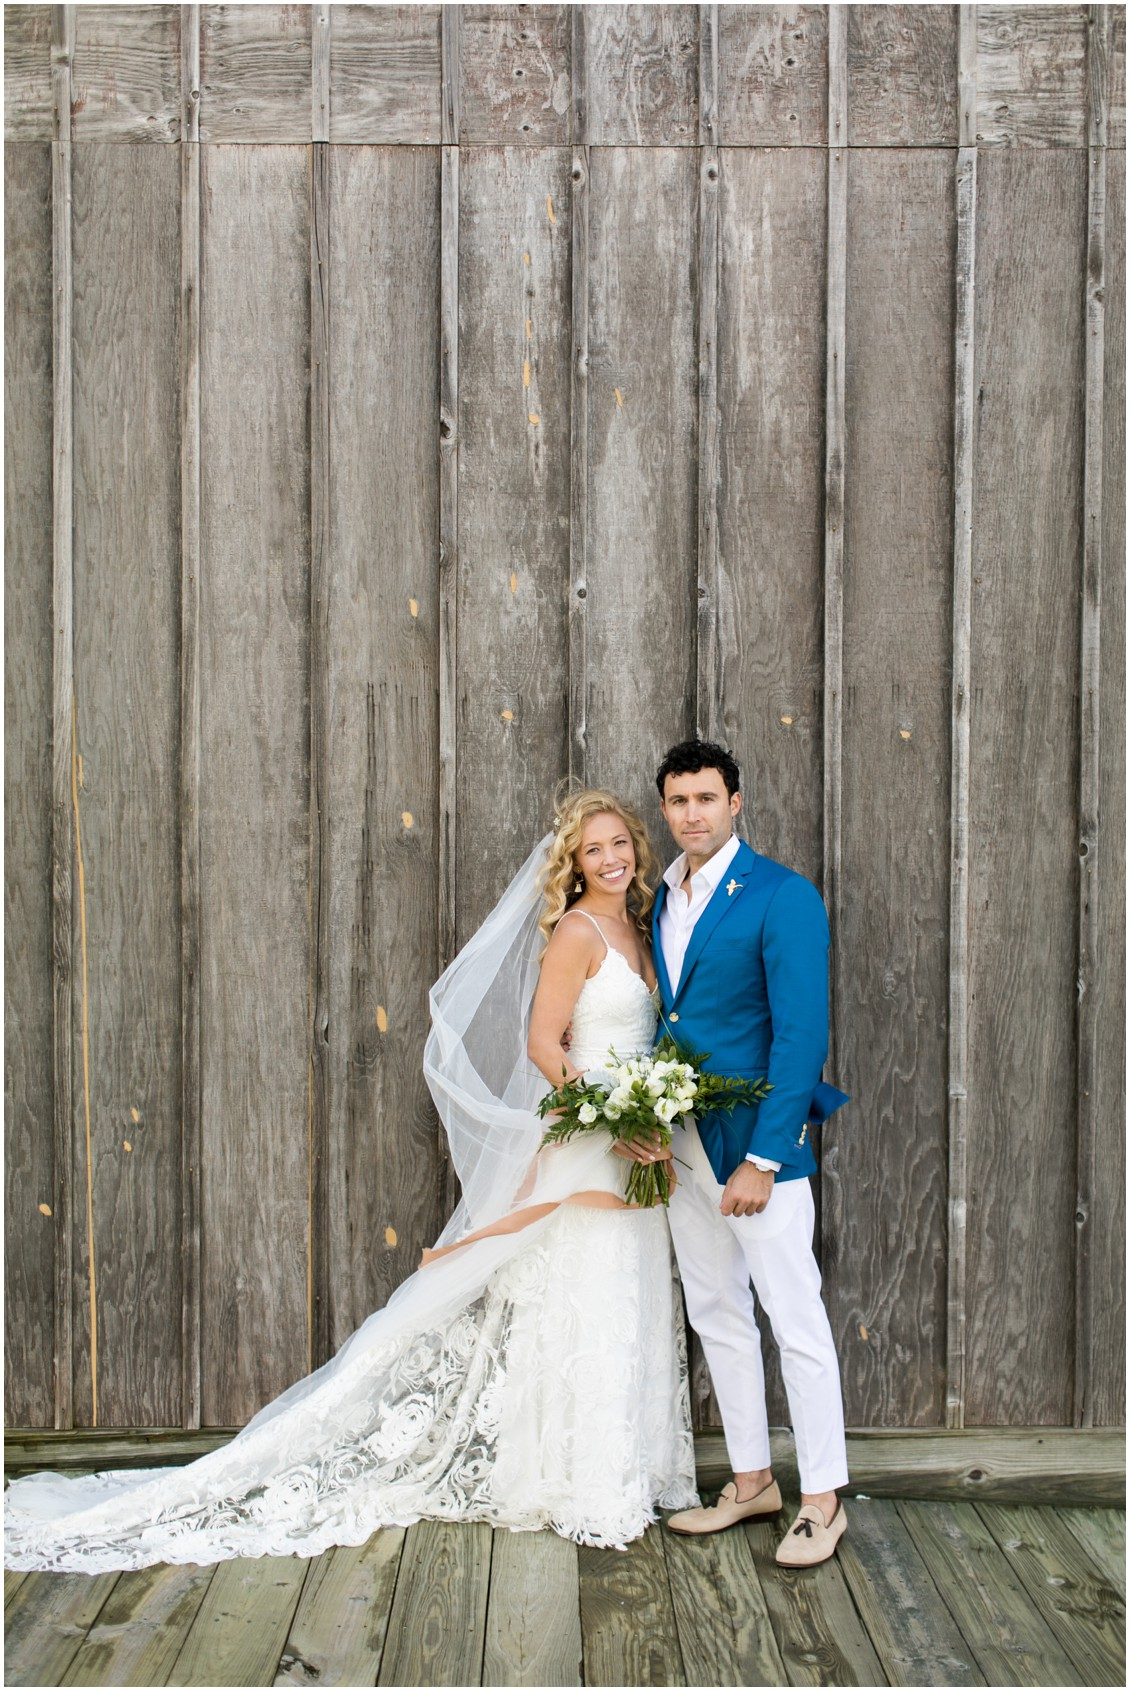 Bride and groom portrait at boat house | My Eastern Shore Wedding | Chesapeake Bay Maritime Museum